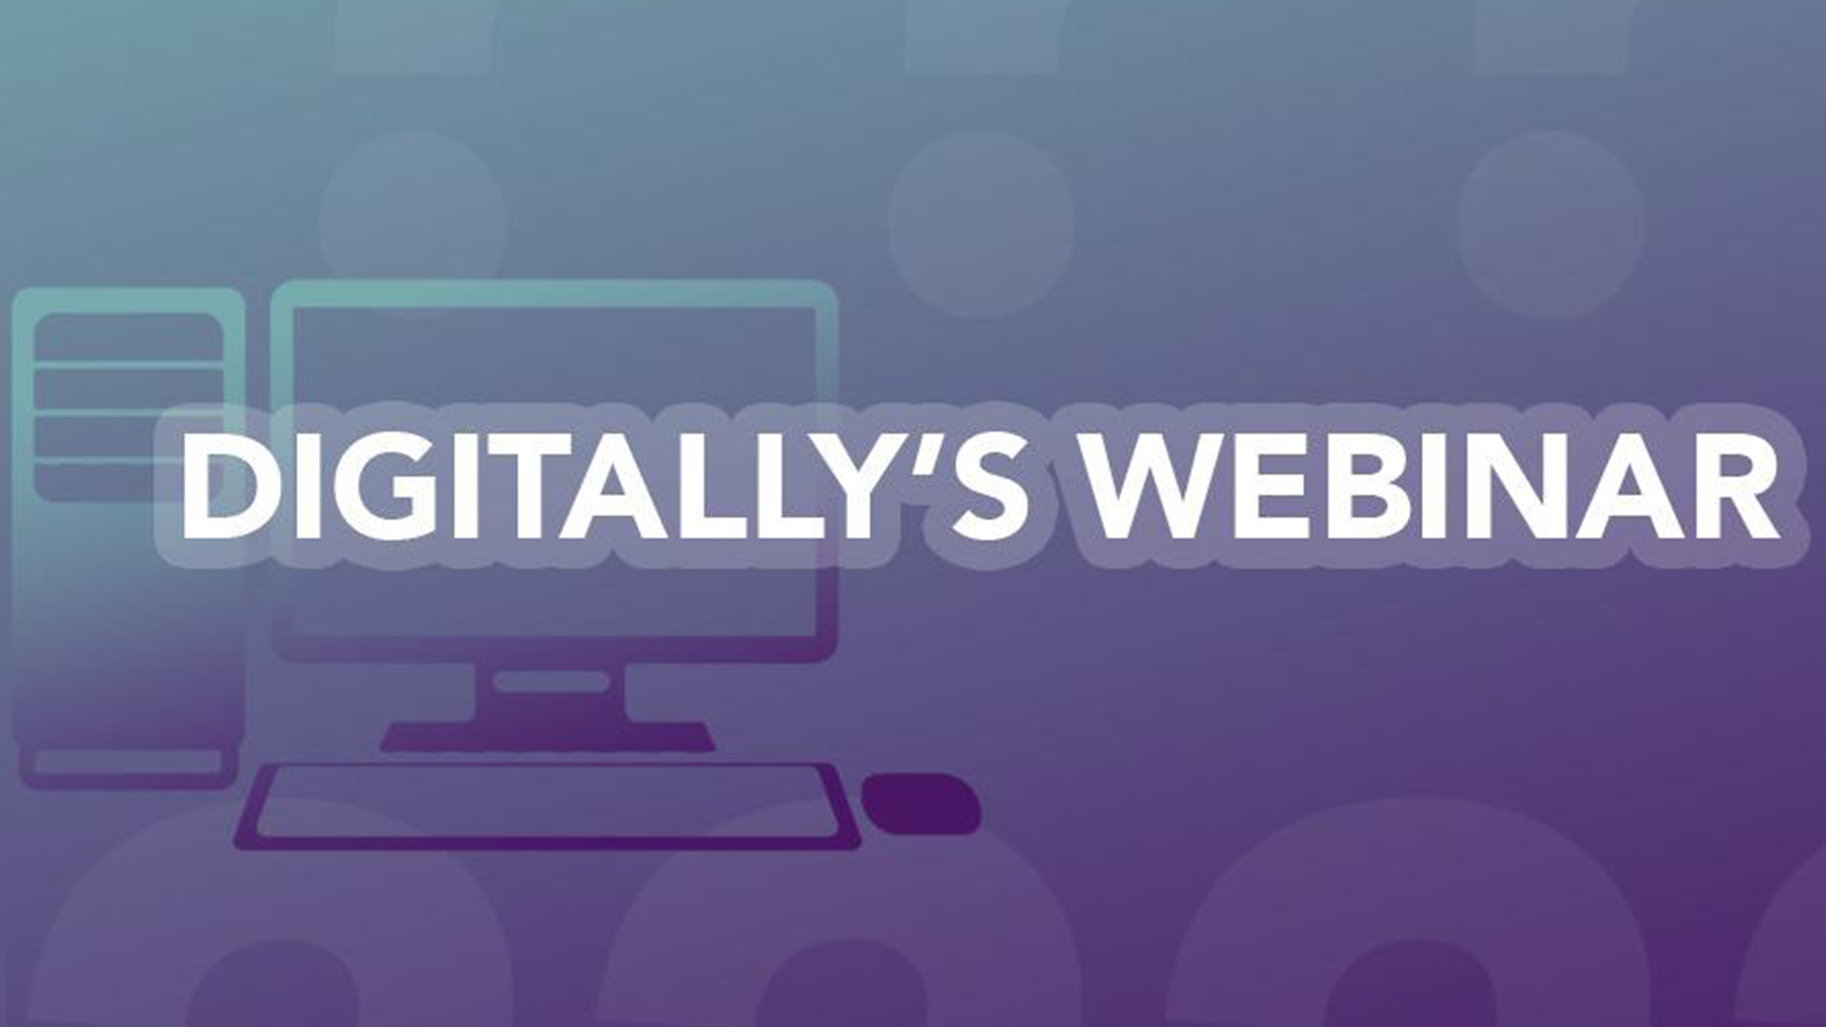 I webinar di DigitAlly